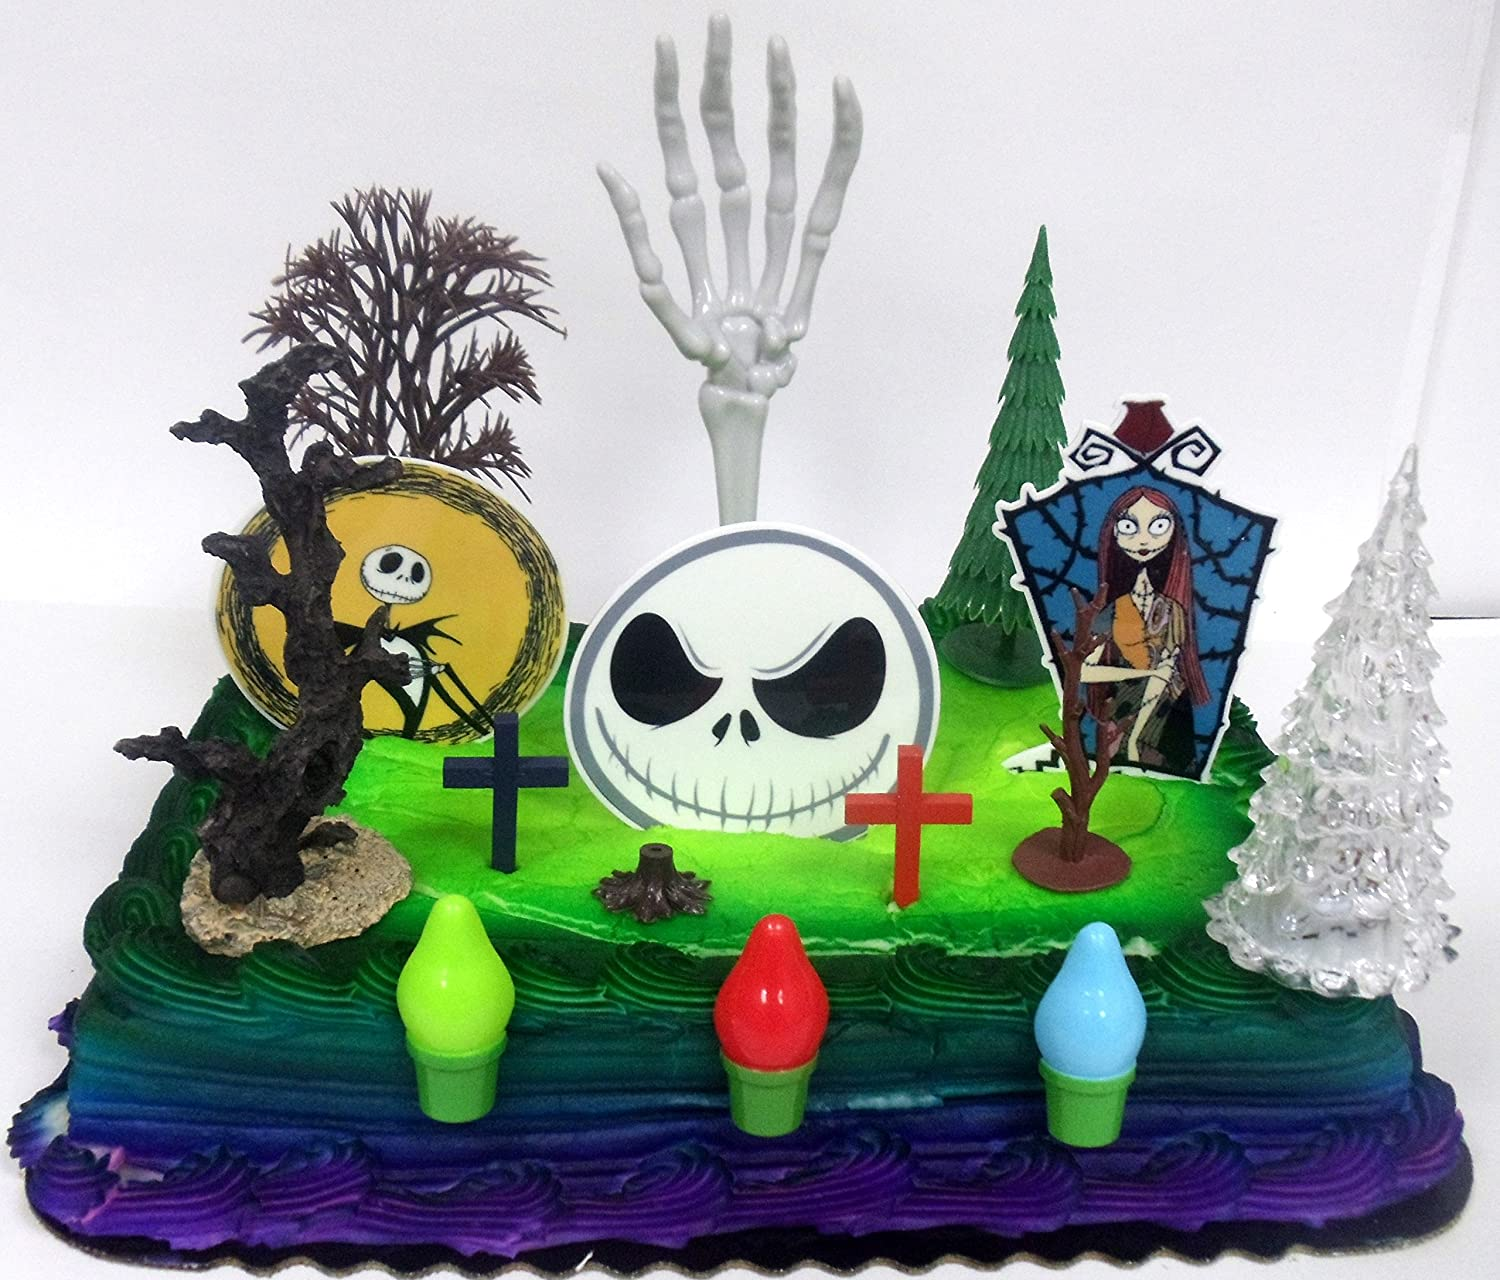 Nightmare Before Christmas Birthday Cake Topper Set Featuring Jack Skellington And Friends Decorative Themed Accessories